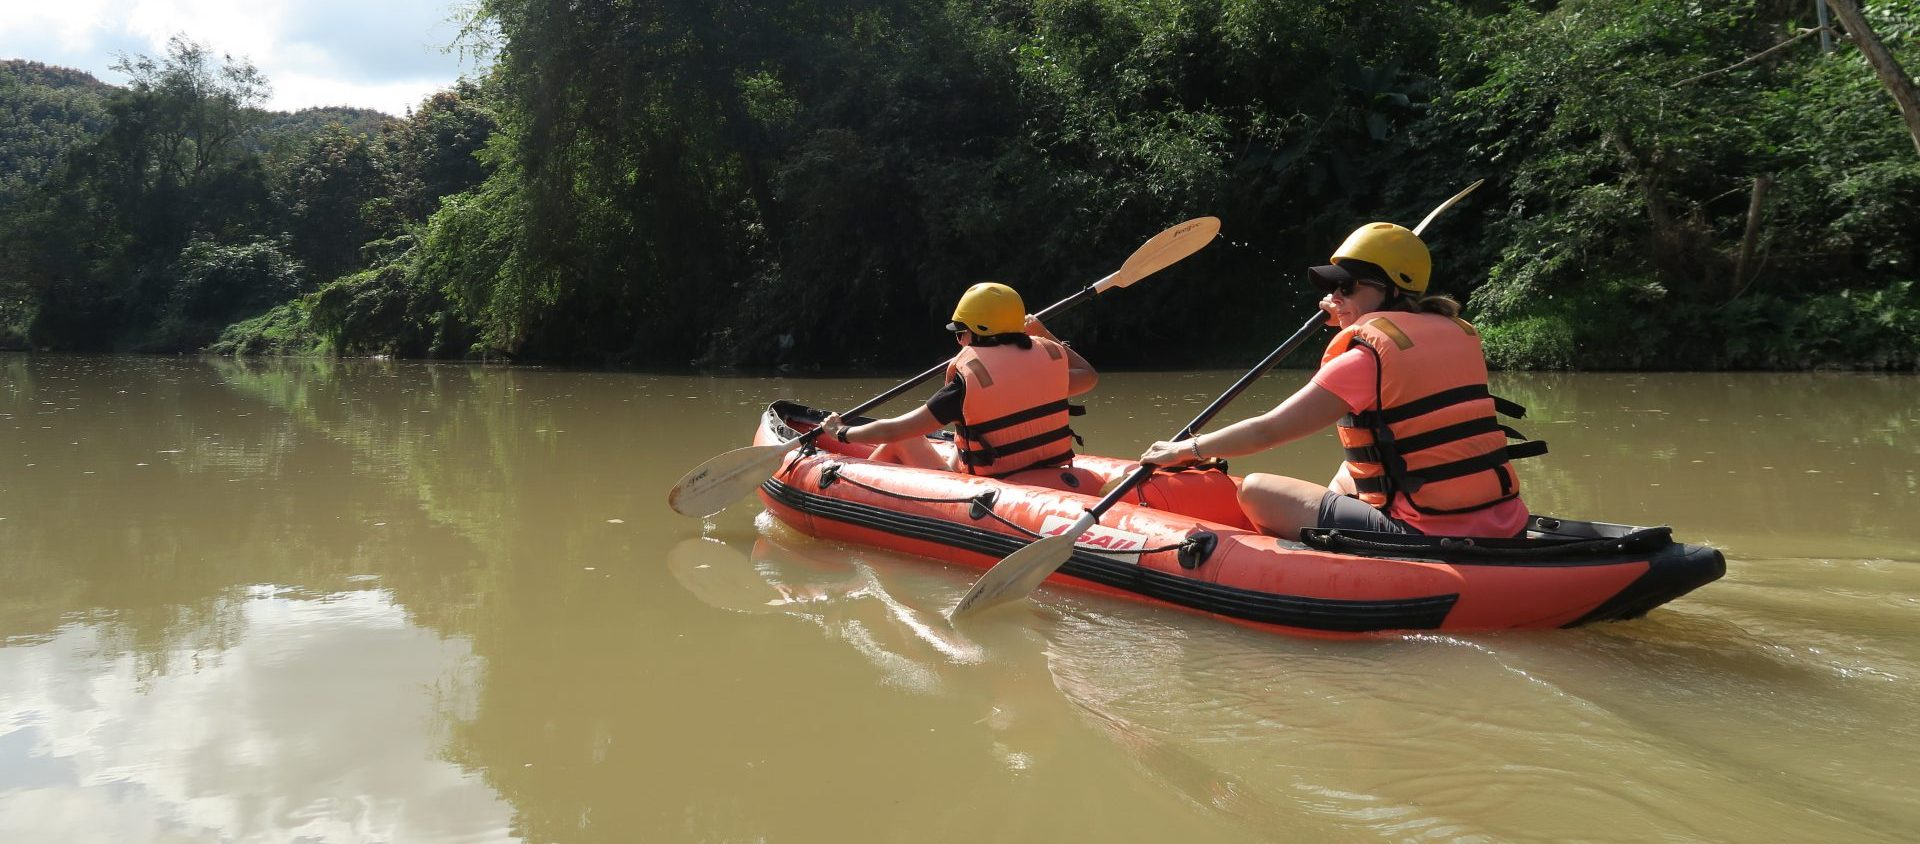 Kayaking & Trekking in Northern Laos - The Hiker